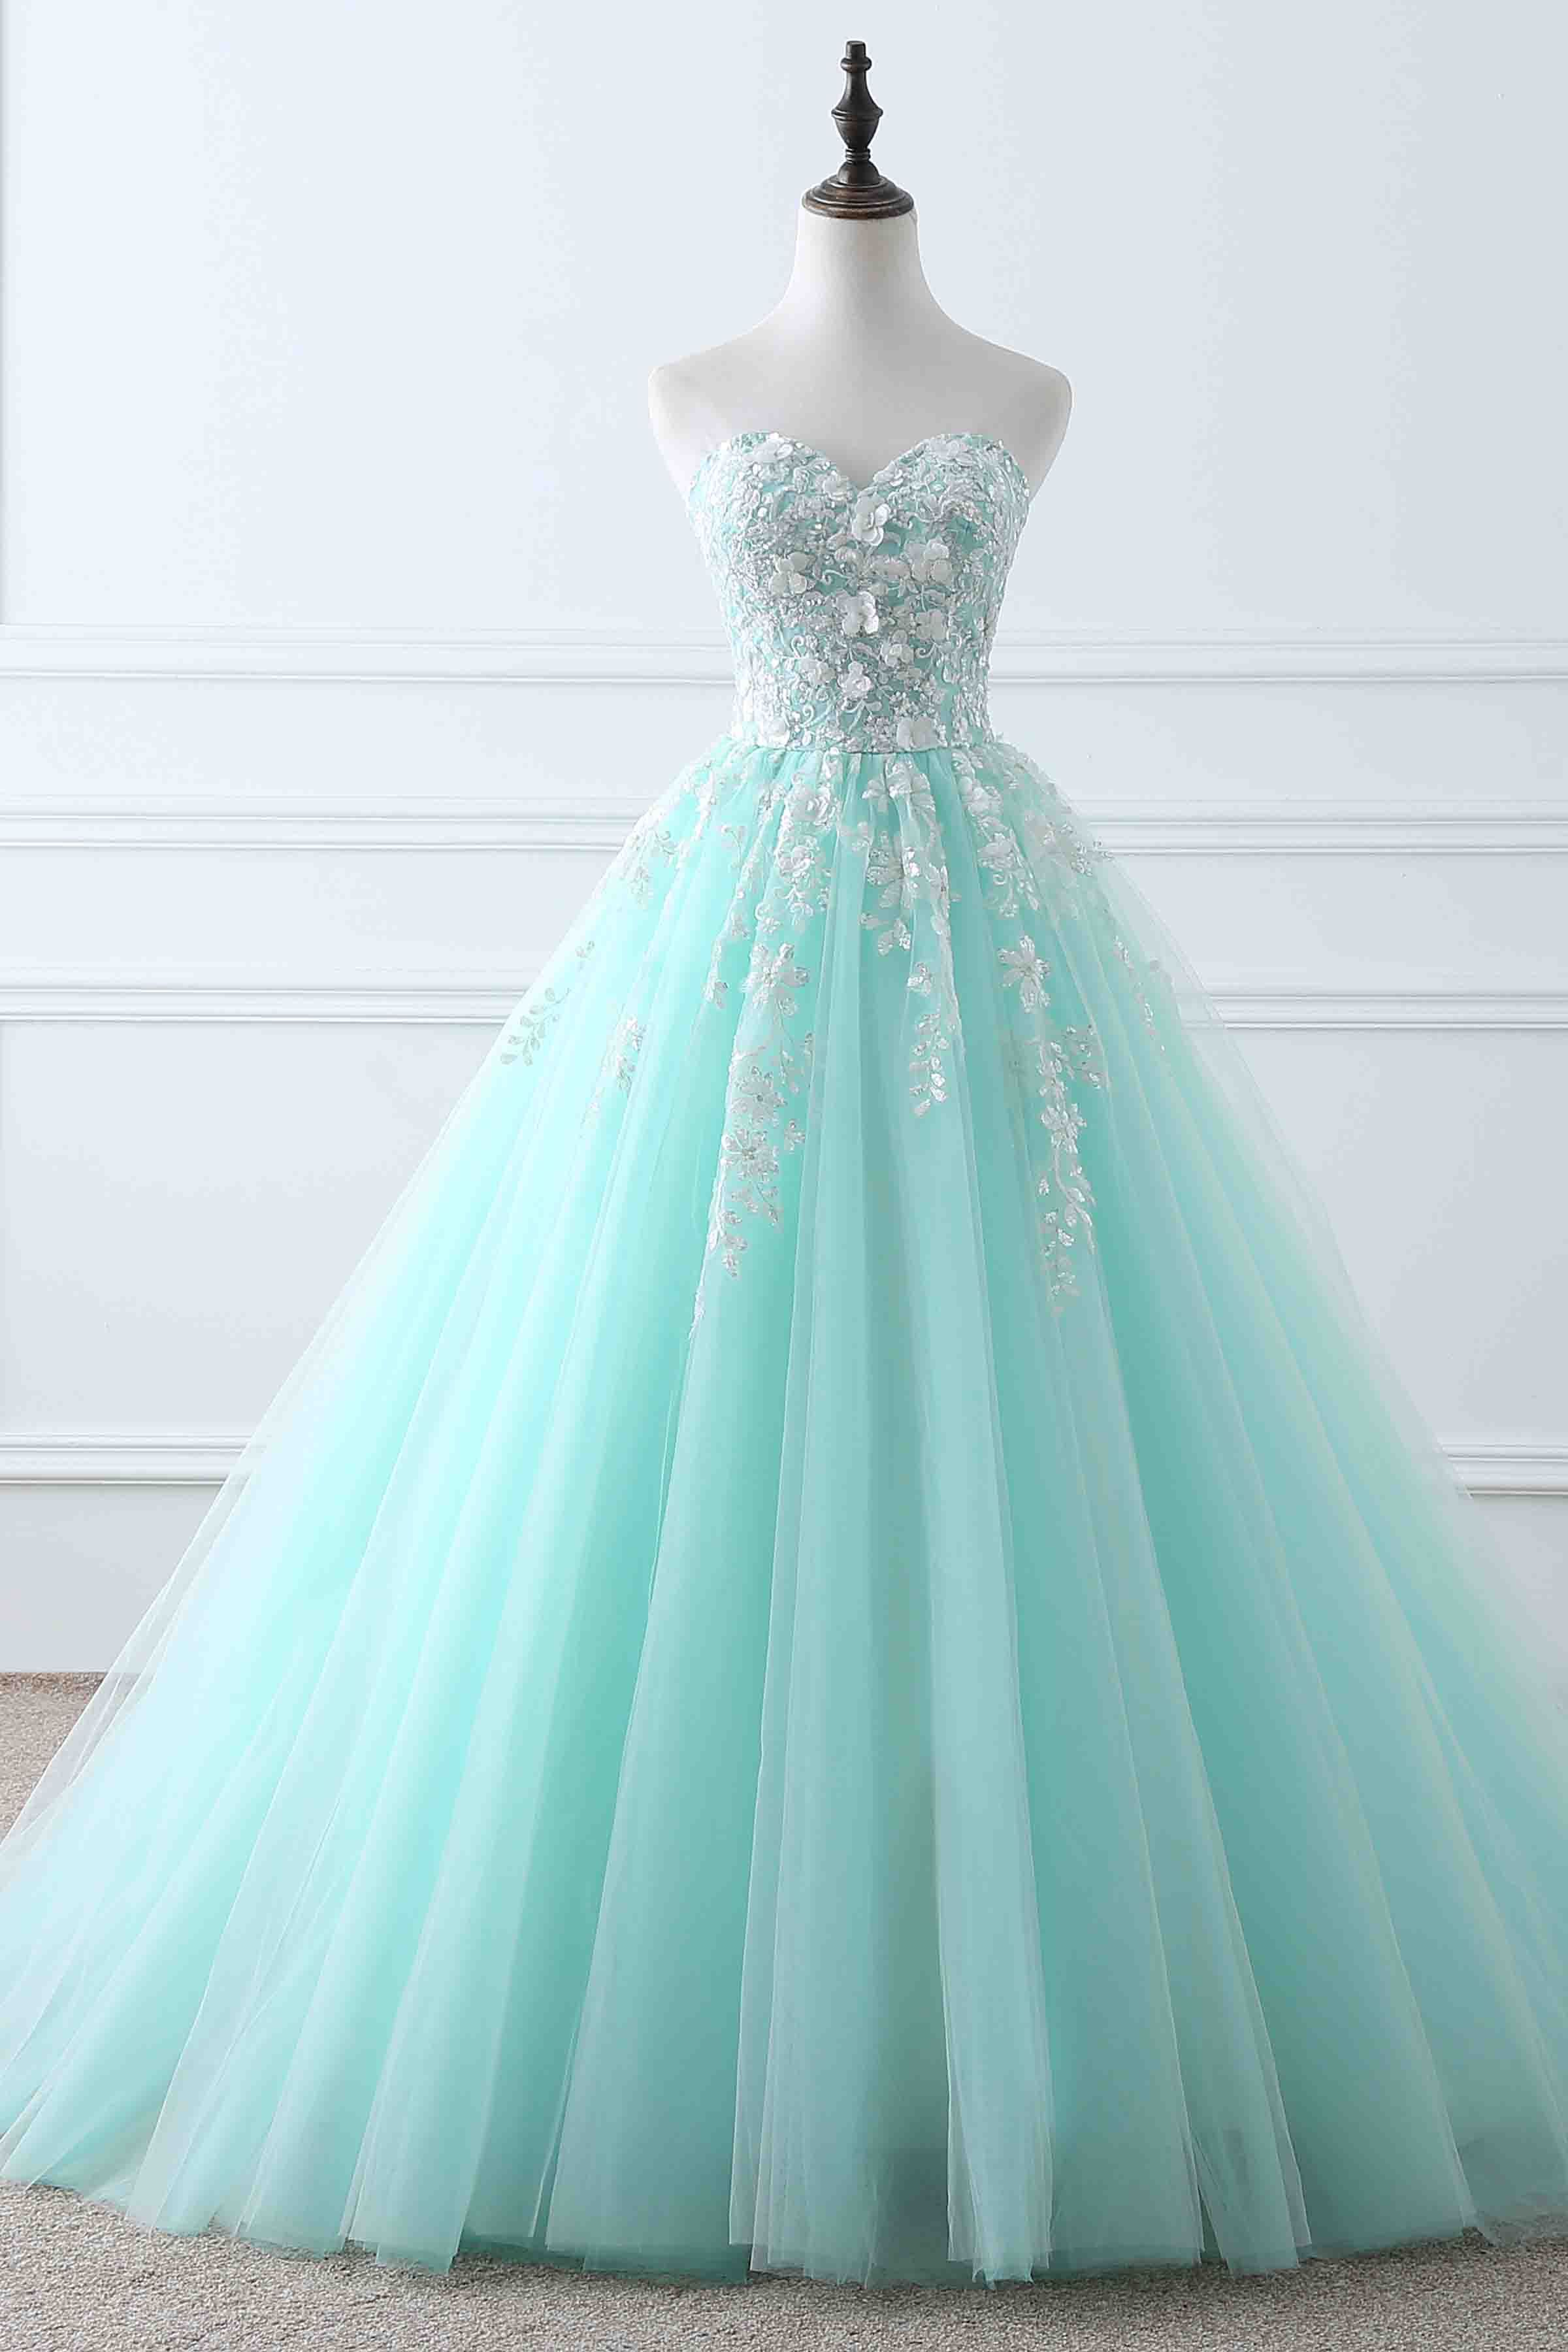 Light blue tulle applique sweetheart lace up ball gown dresses from